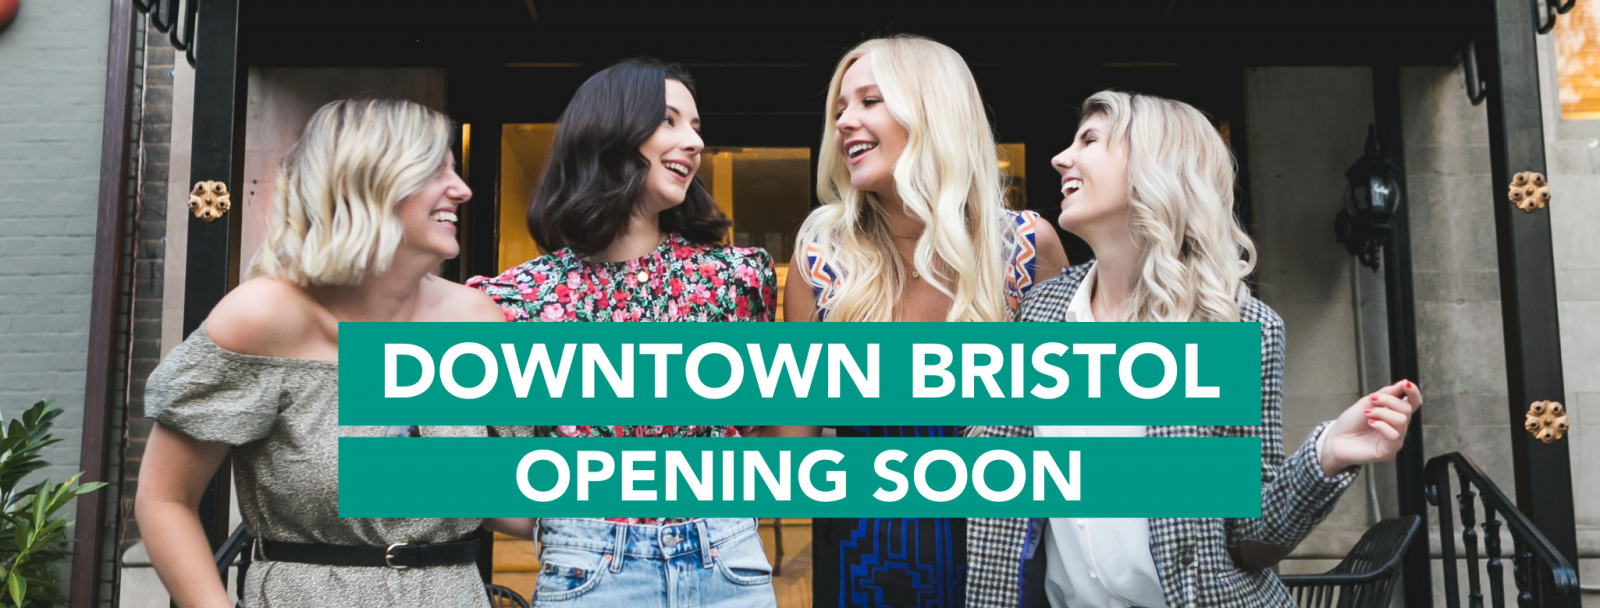 Website__DOWNTOWN_BRISTOL_NEW_LOCATION_OPENING_SOON.png